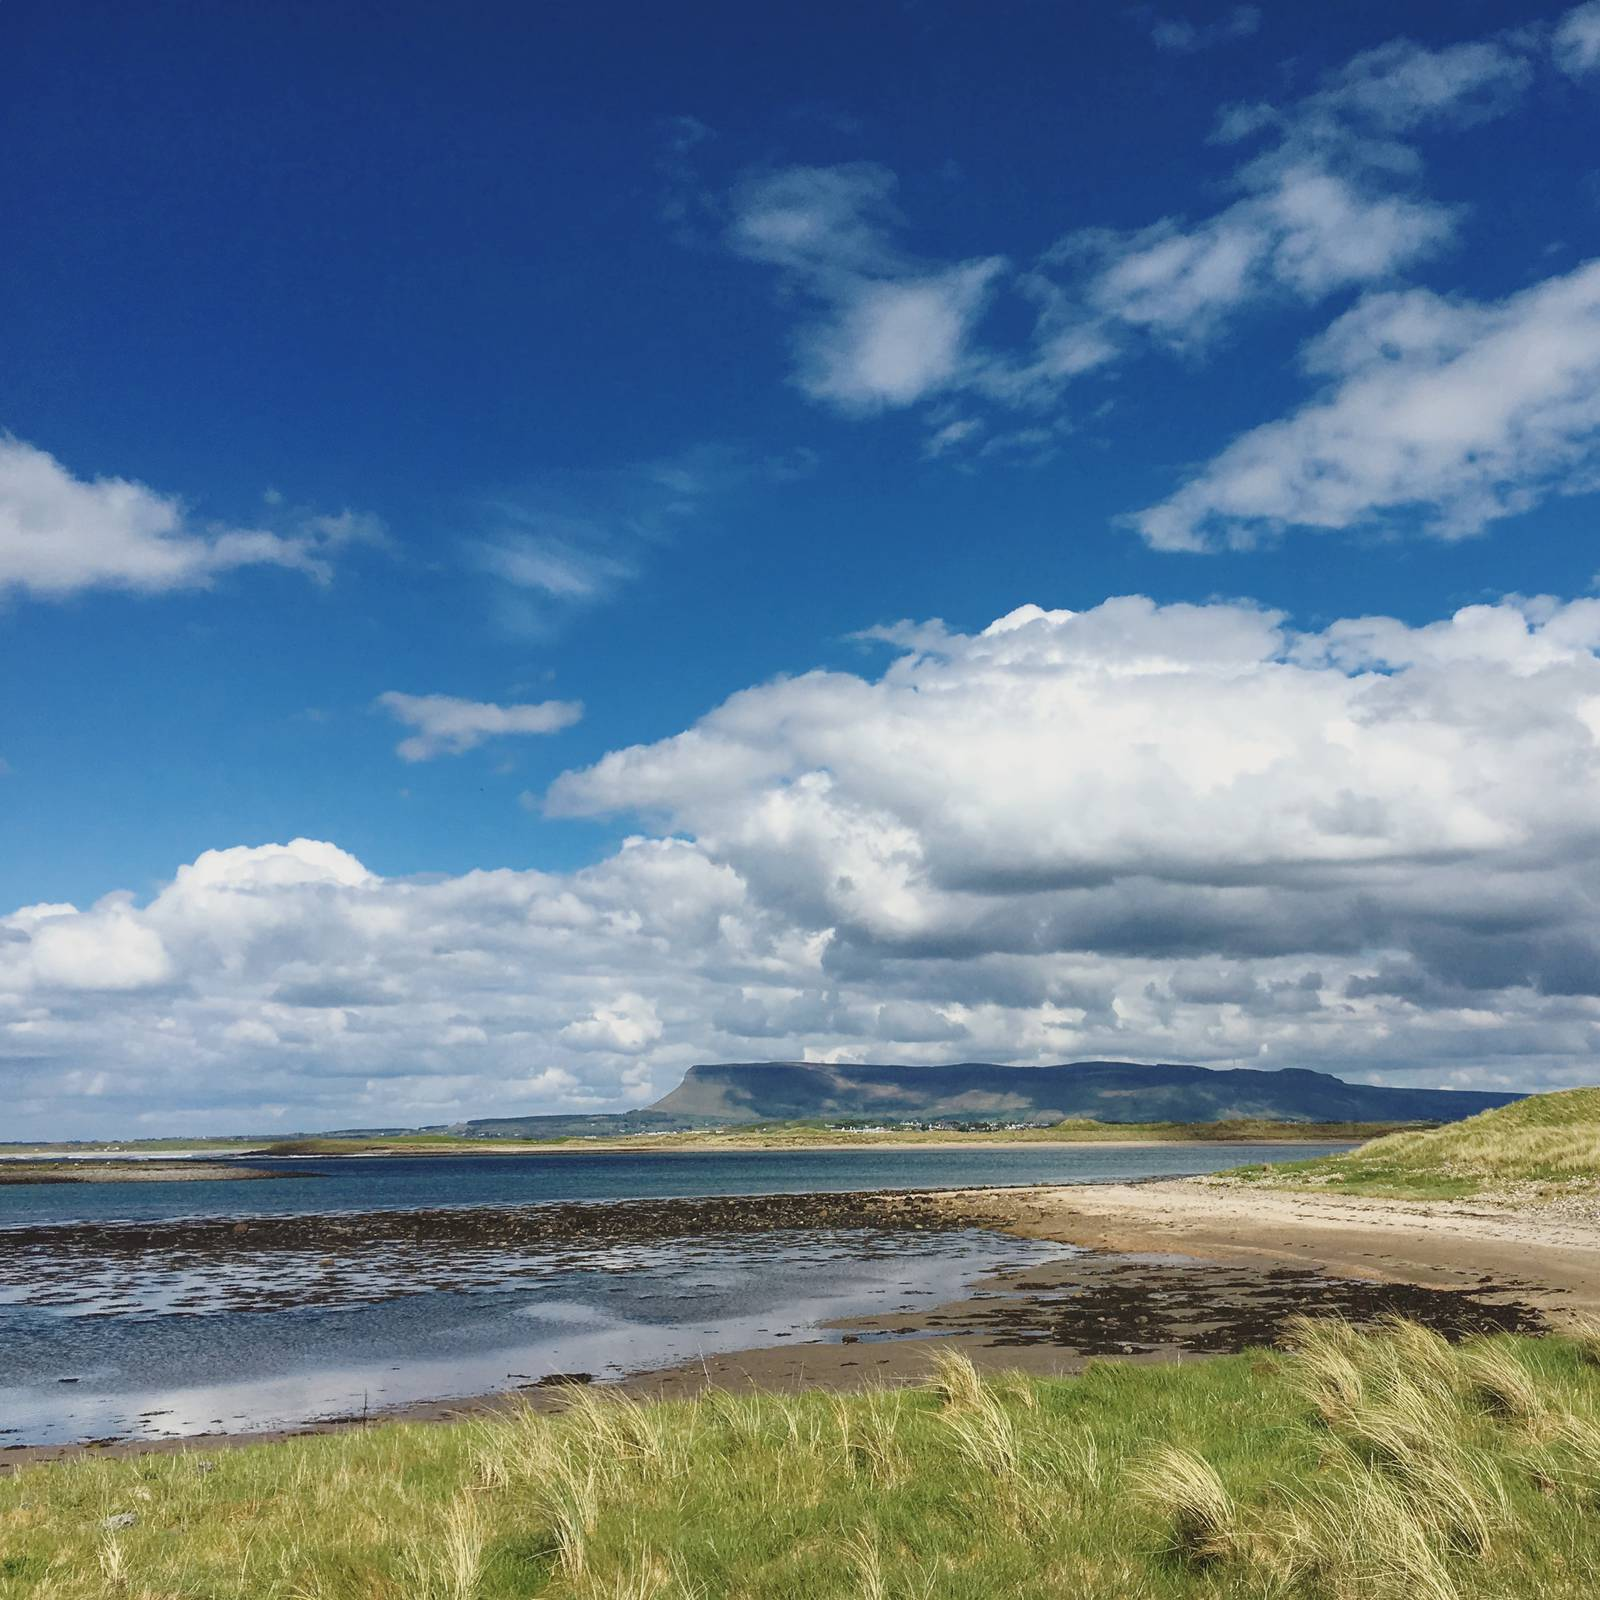 Benbulben and Sligo Bay from Strandhill